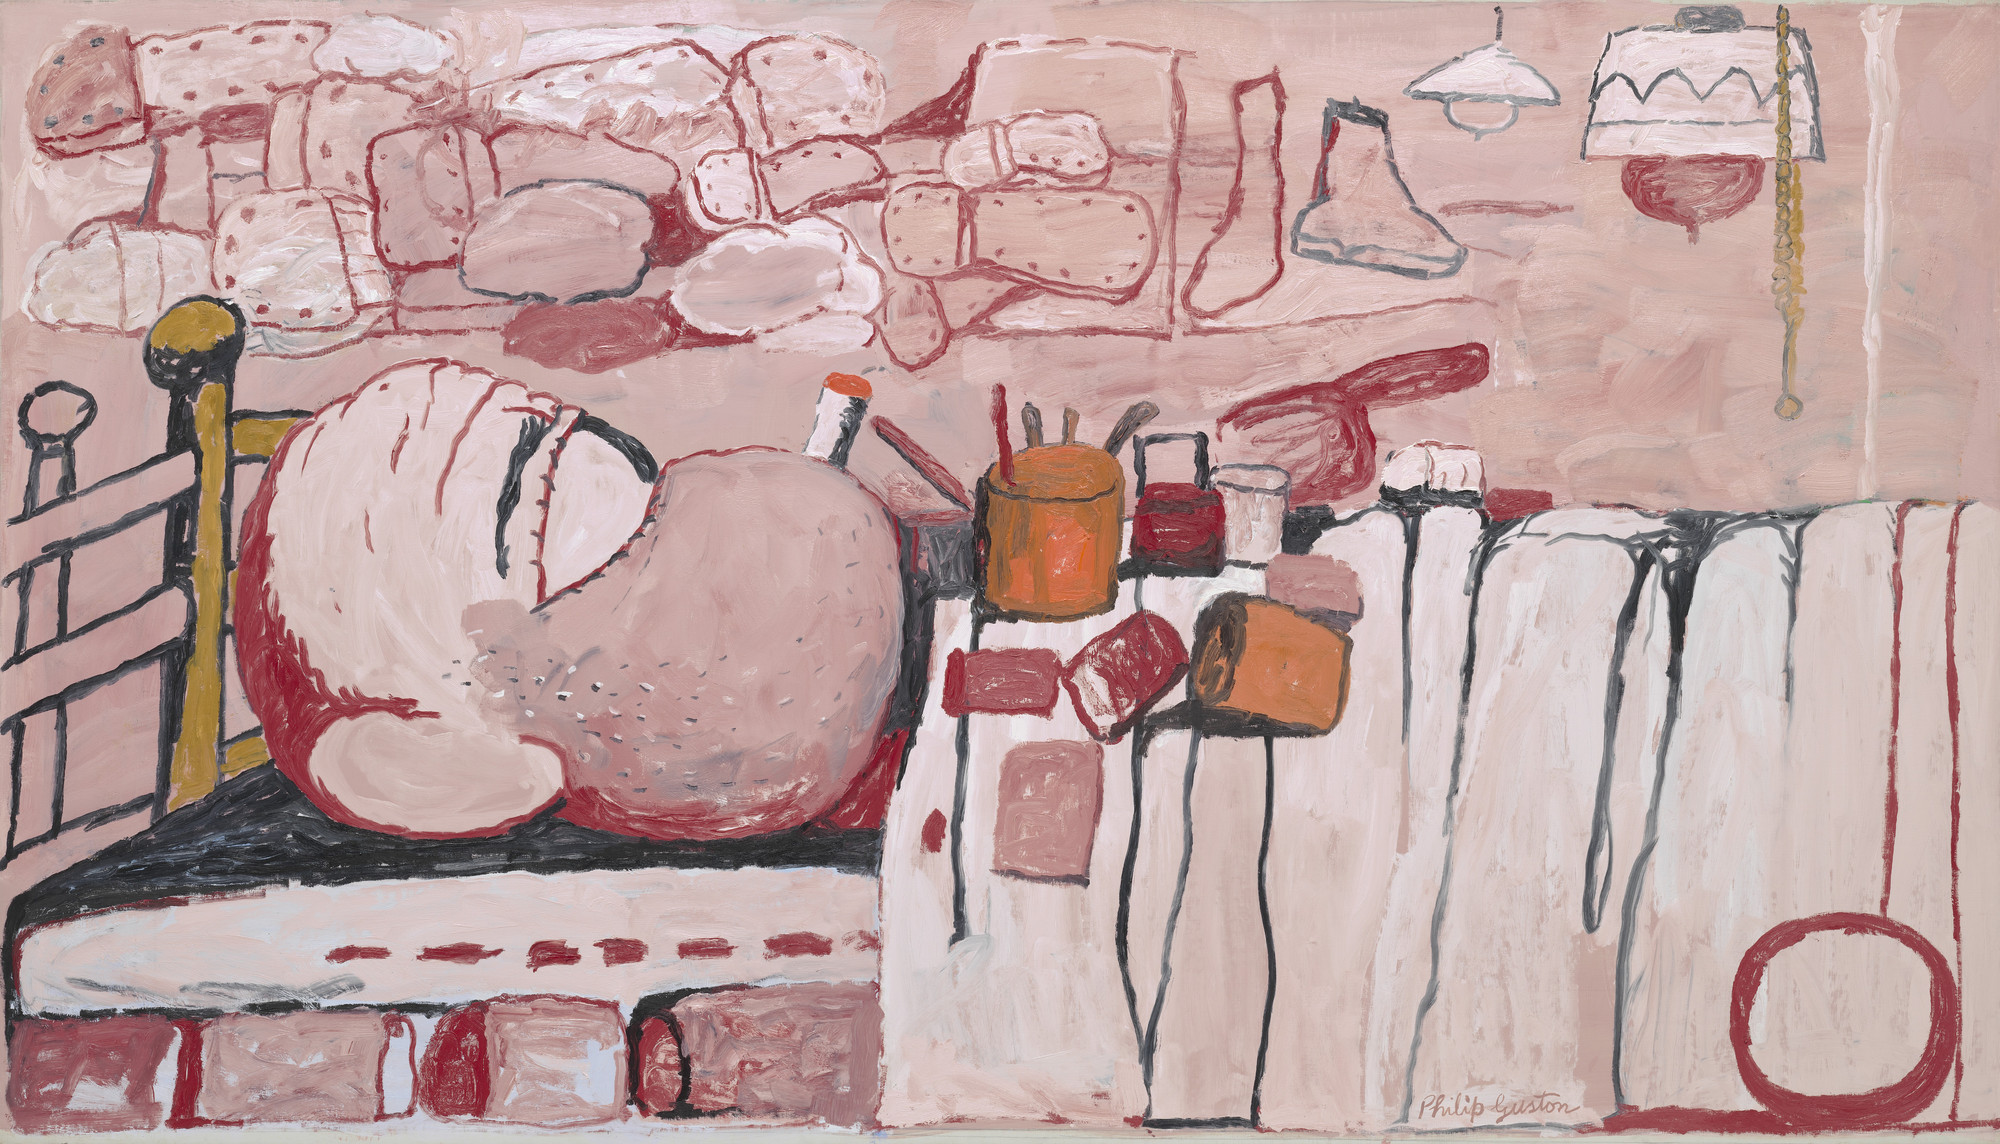 Philip Guston. Painter in Bed. 1973